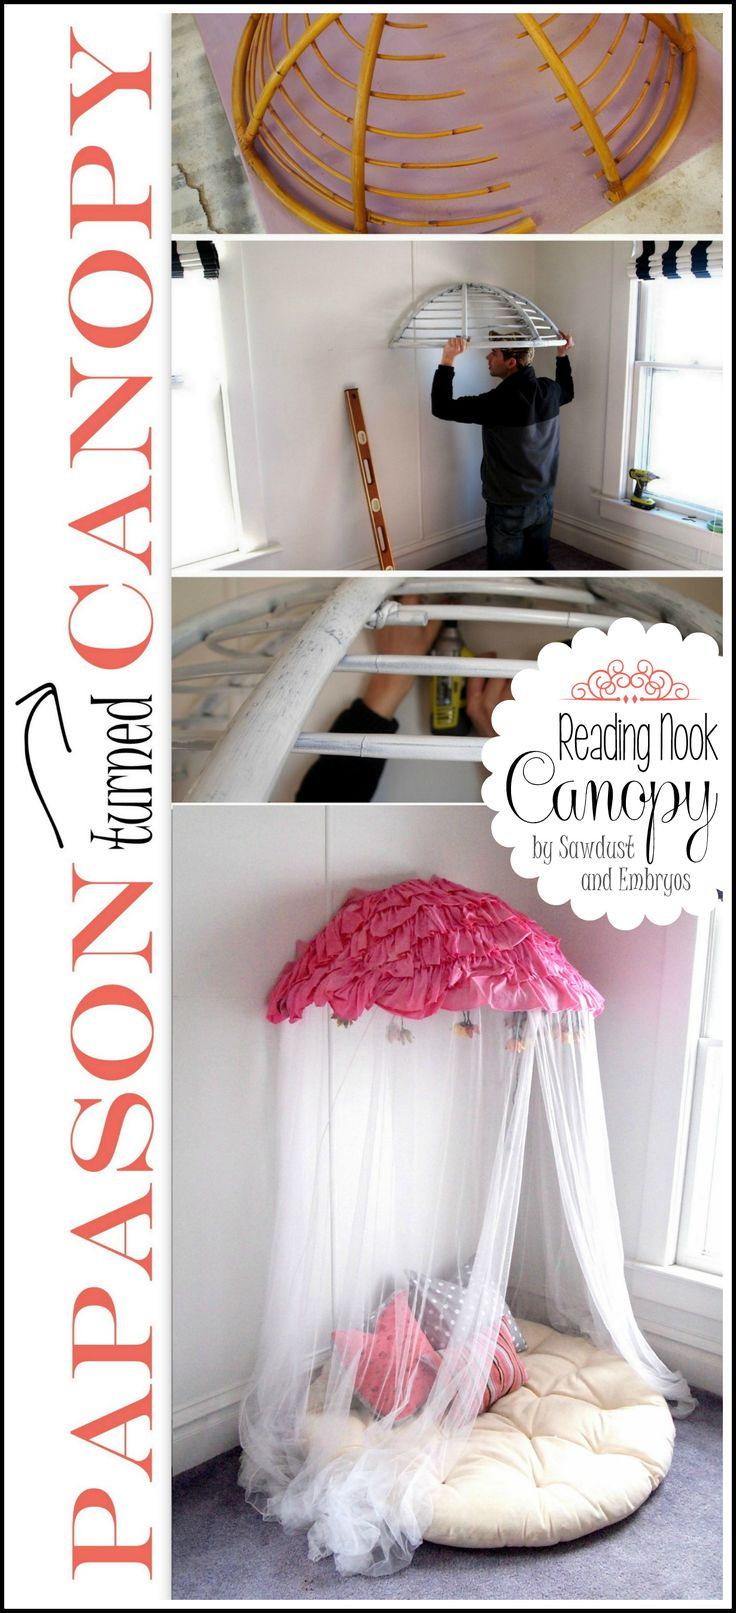 Reading Nook Canopy Tutorial - clever project shows how a papasan chair and cushion were repurposed into a cute tent/canopy that takes up very little space.